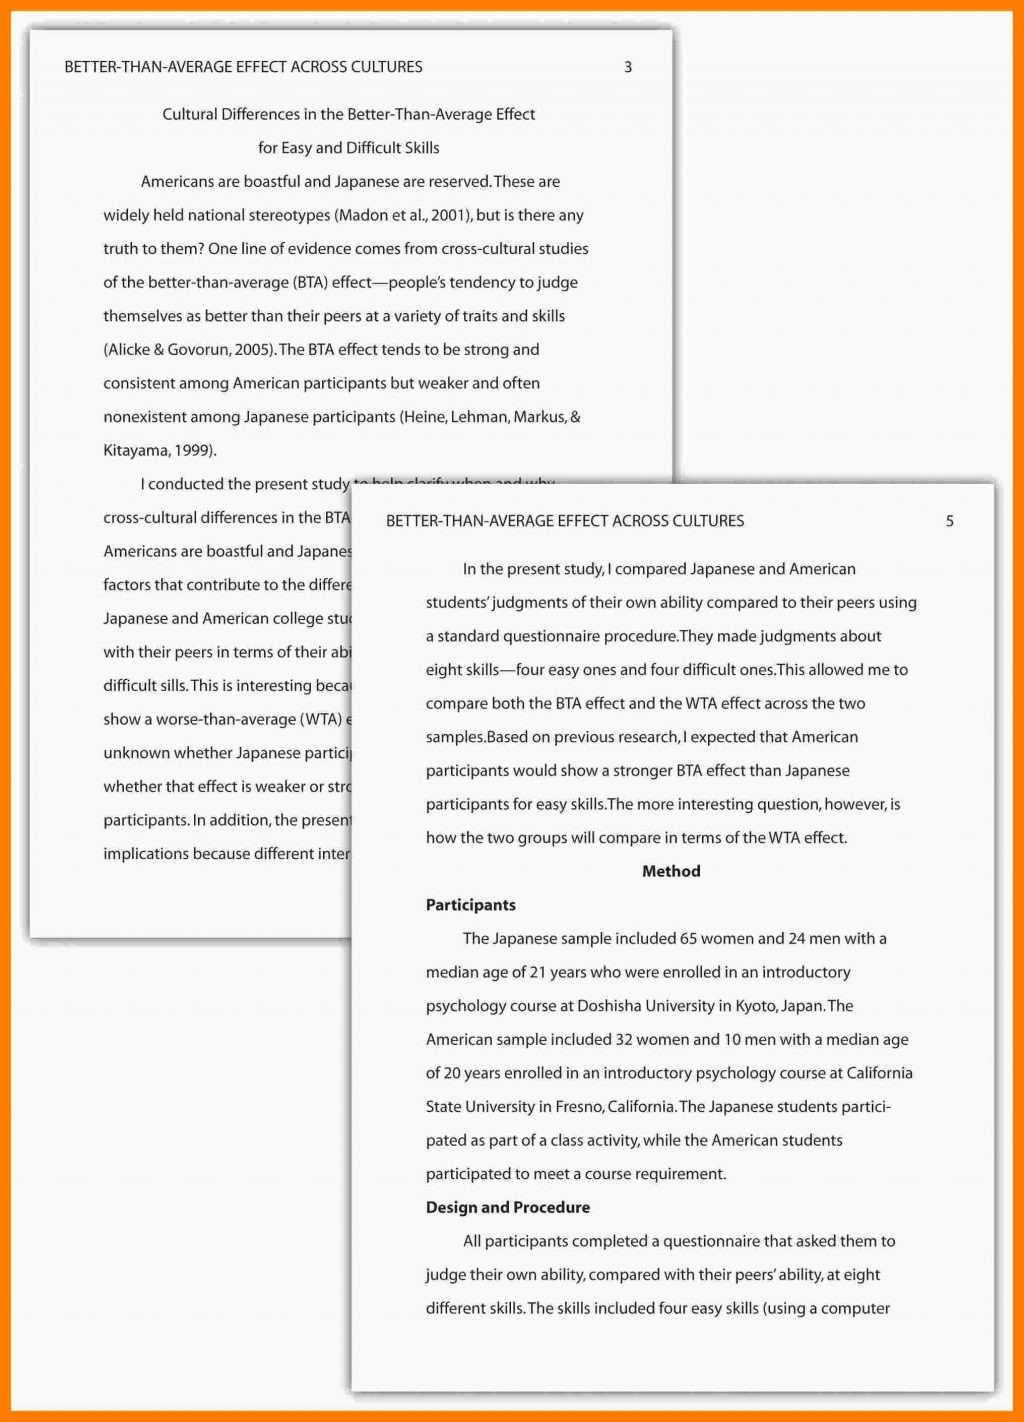 008 Research Paper Medical Outline Template Apa Style Example Teller Resume Formatarch Papers In Non Singular Large